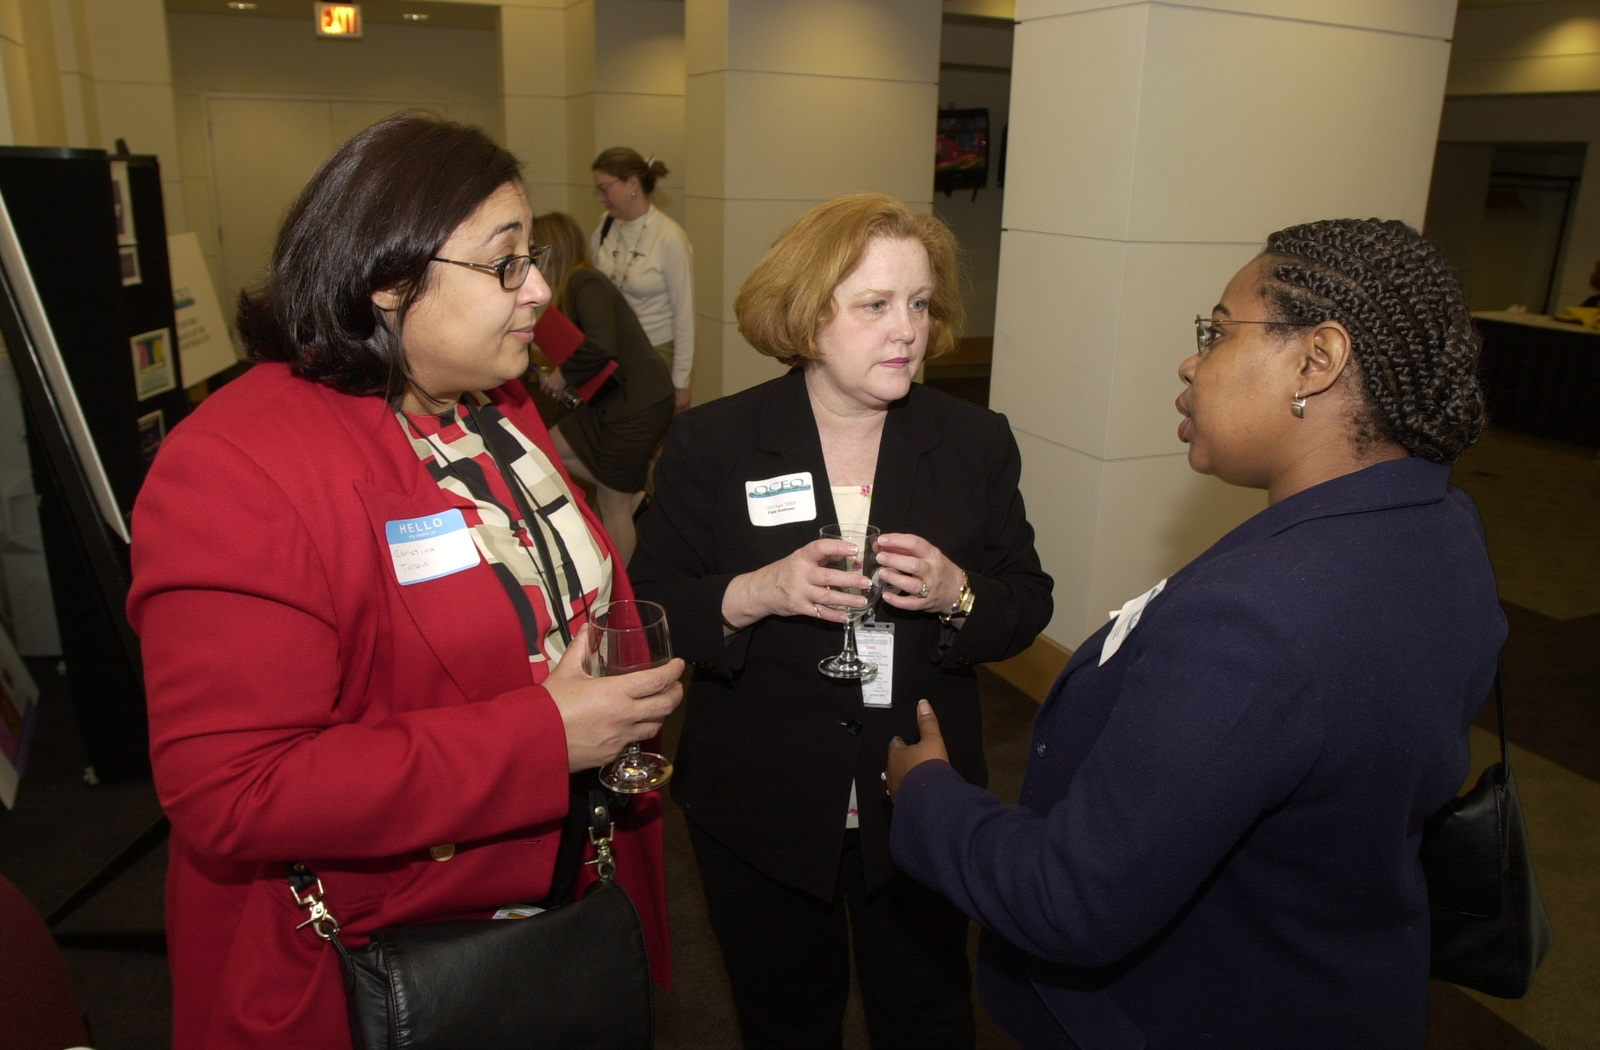 Administrator Christine Todd Whitman visits the Office of the Chief Financial Officer's (OCFO) Open House hosted by Chief Financial Officer (CFO) Linda Combs [412-APD-A129-DSC_0135.JPG]